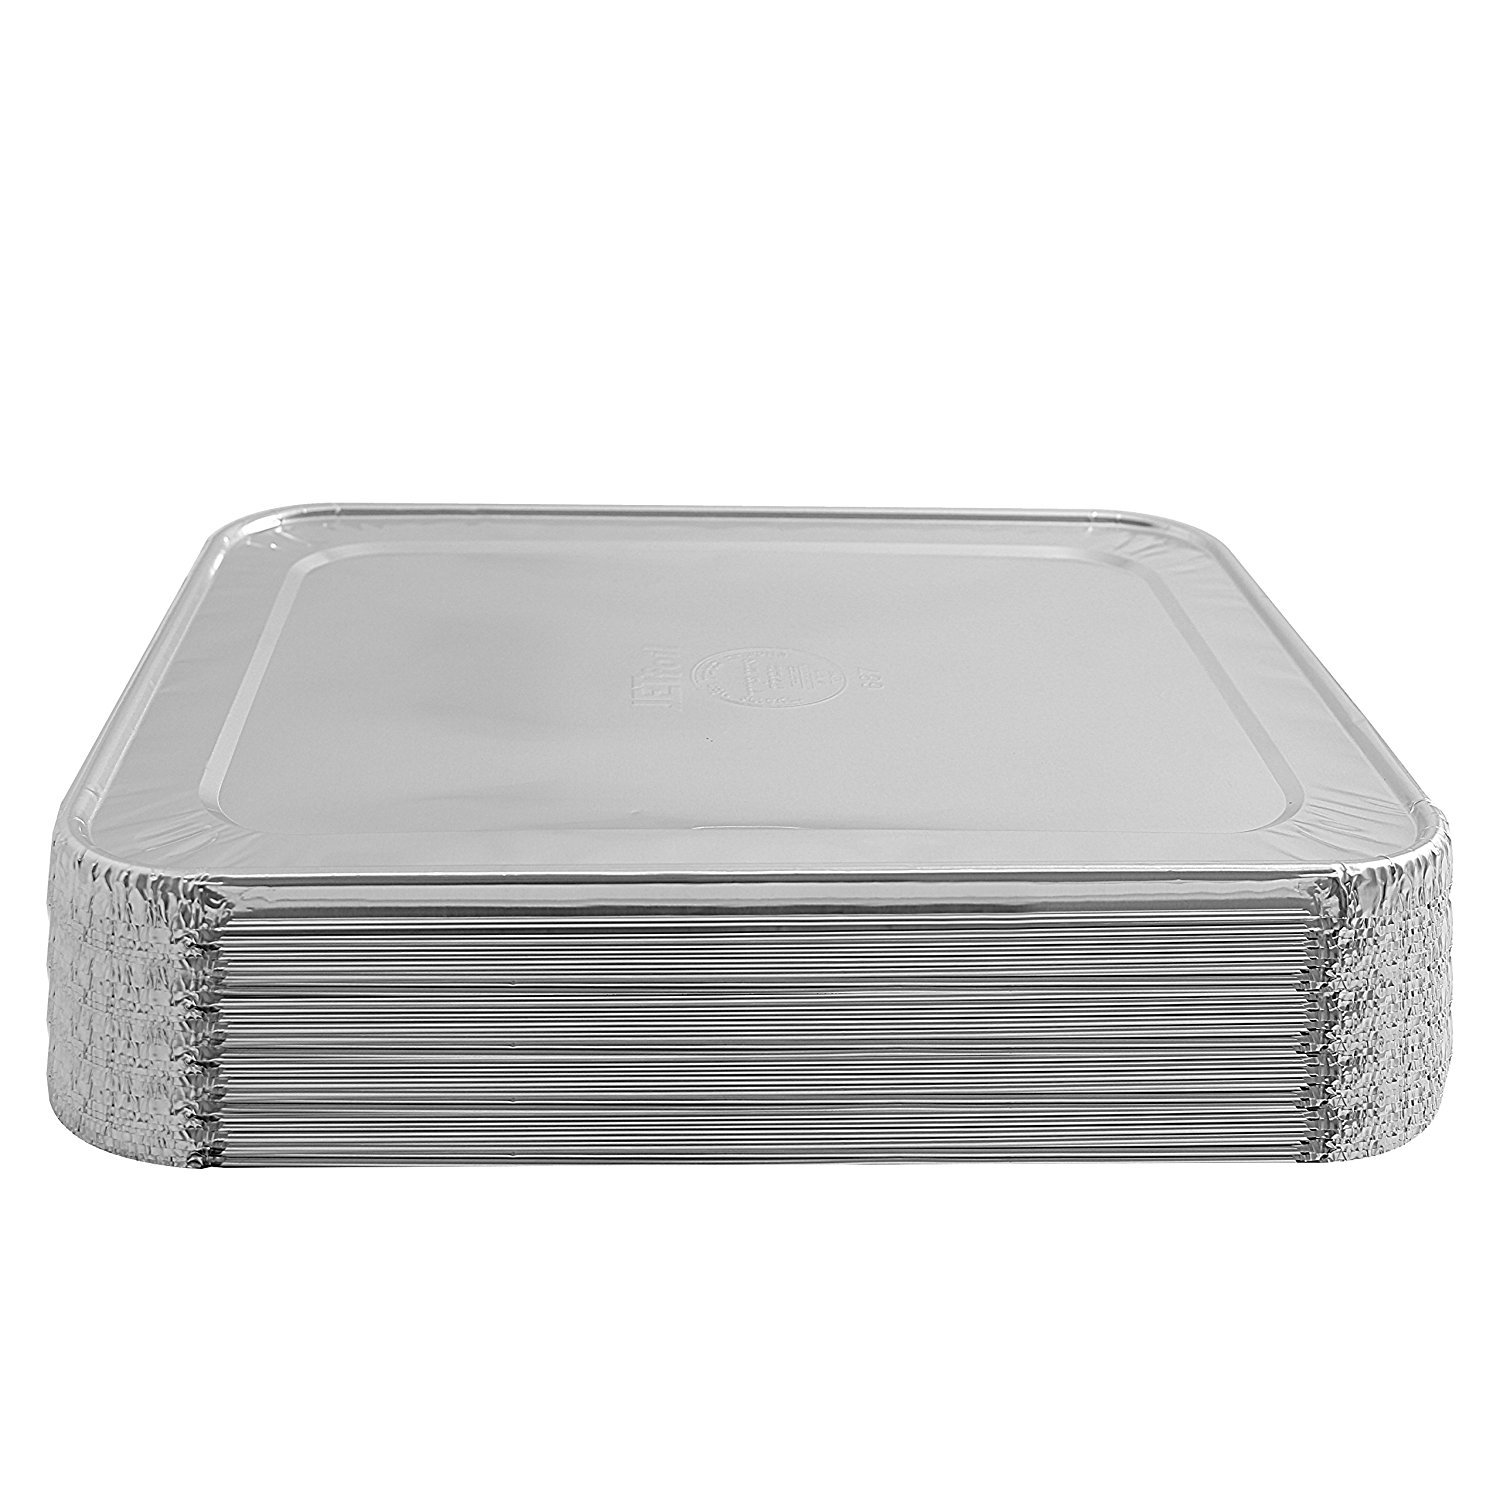 Jetfoil Aluminum Foil Steam Table Pans With Lids   Perfect for Catering, Party Supplies & Suitable for Broiling, Baking, Cakes and Pies - 9 x 13 Half size Deep   Pack of 30 by Jetfoil (Image #6)